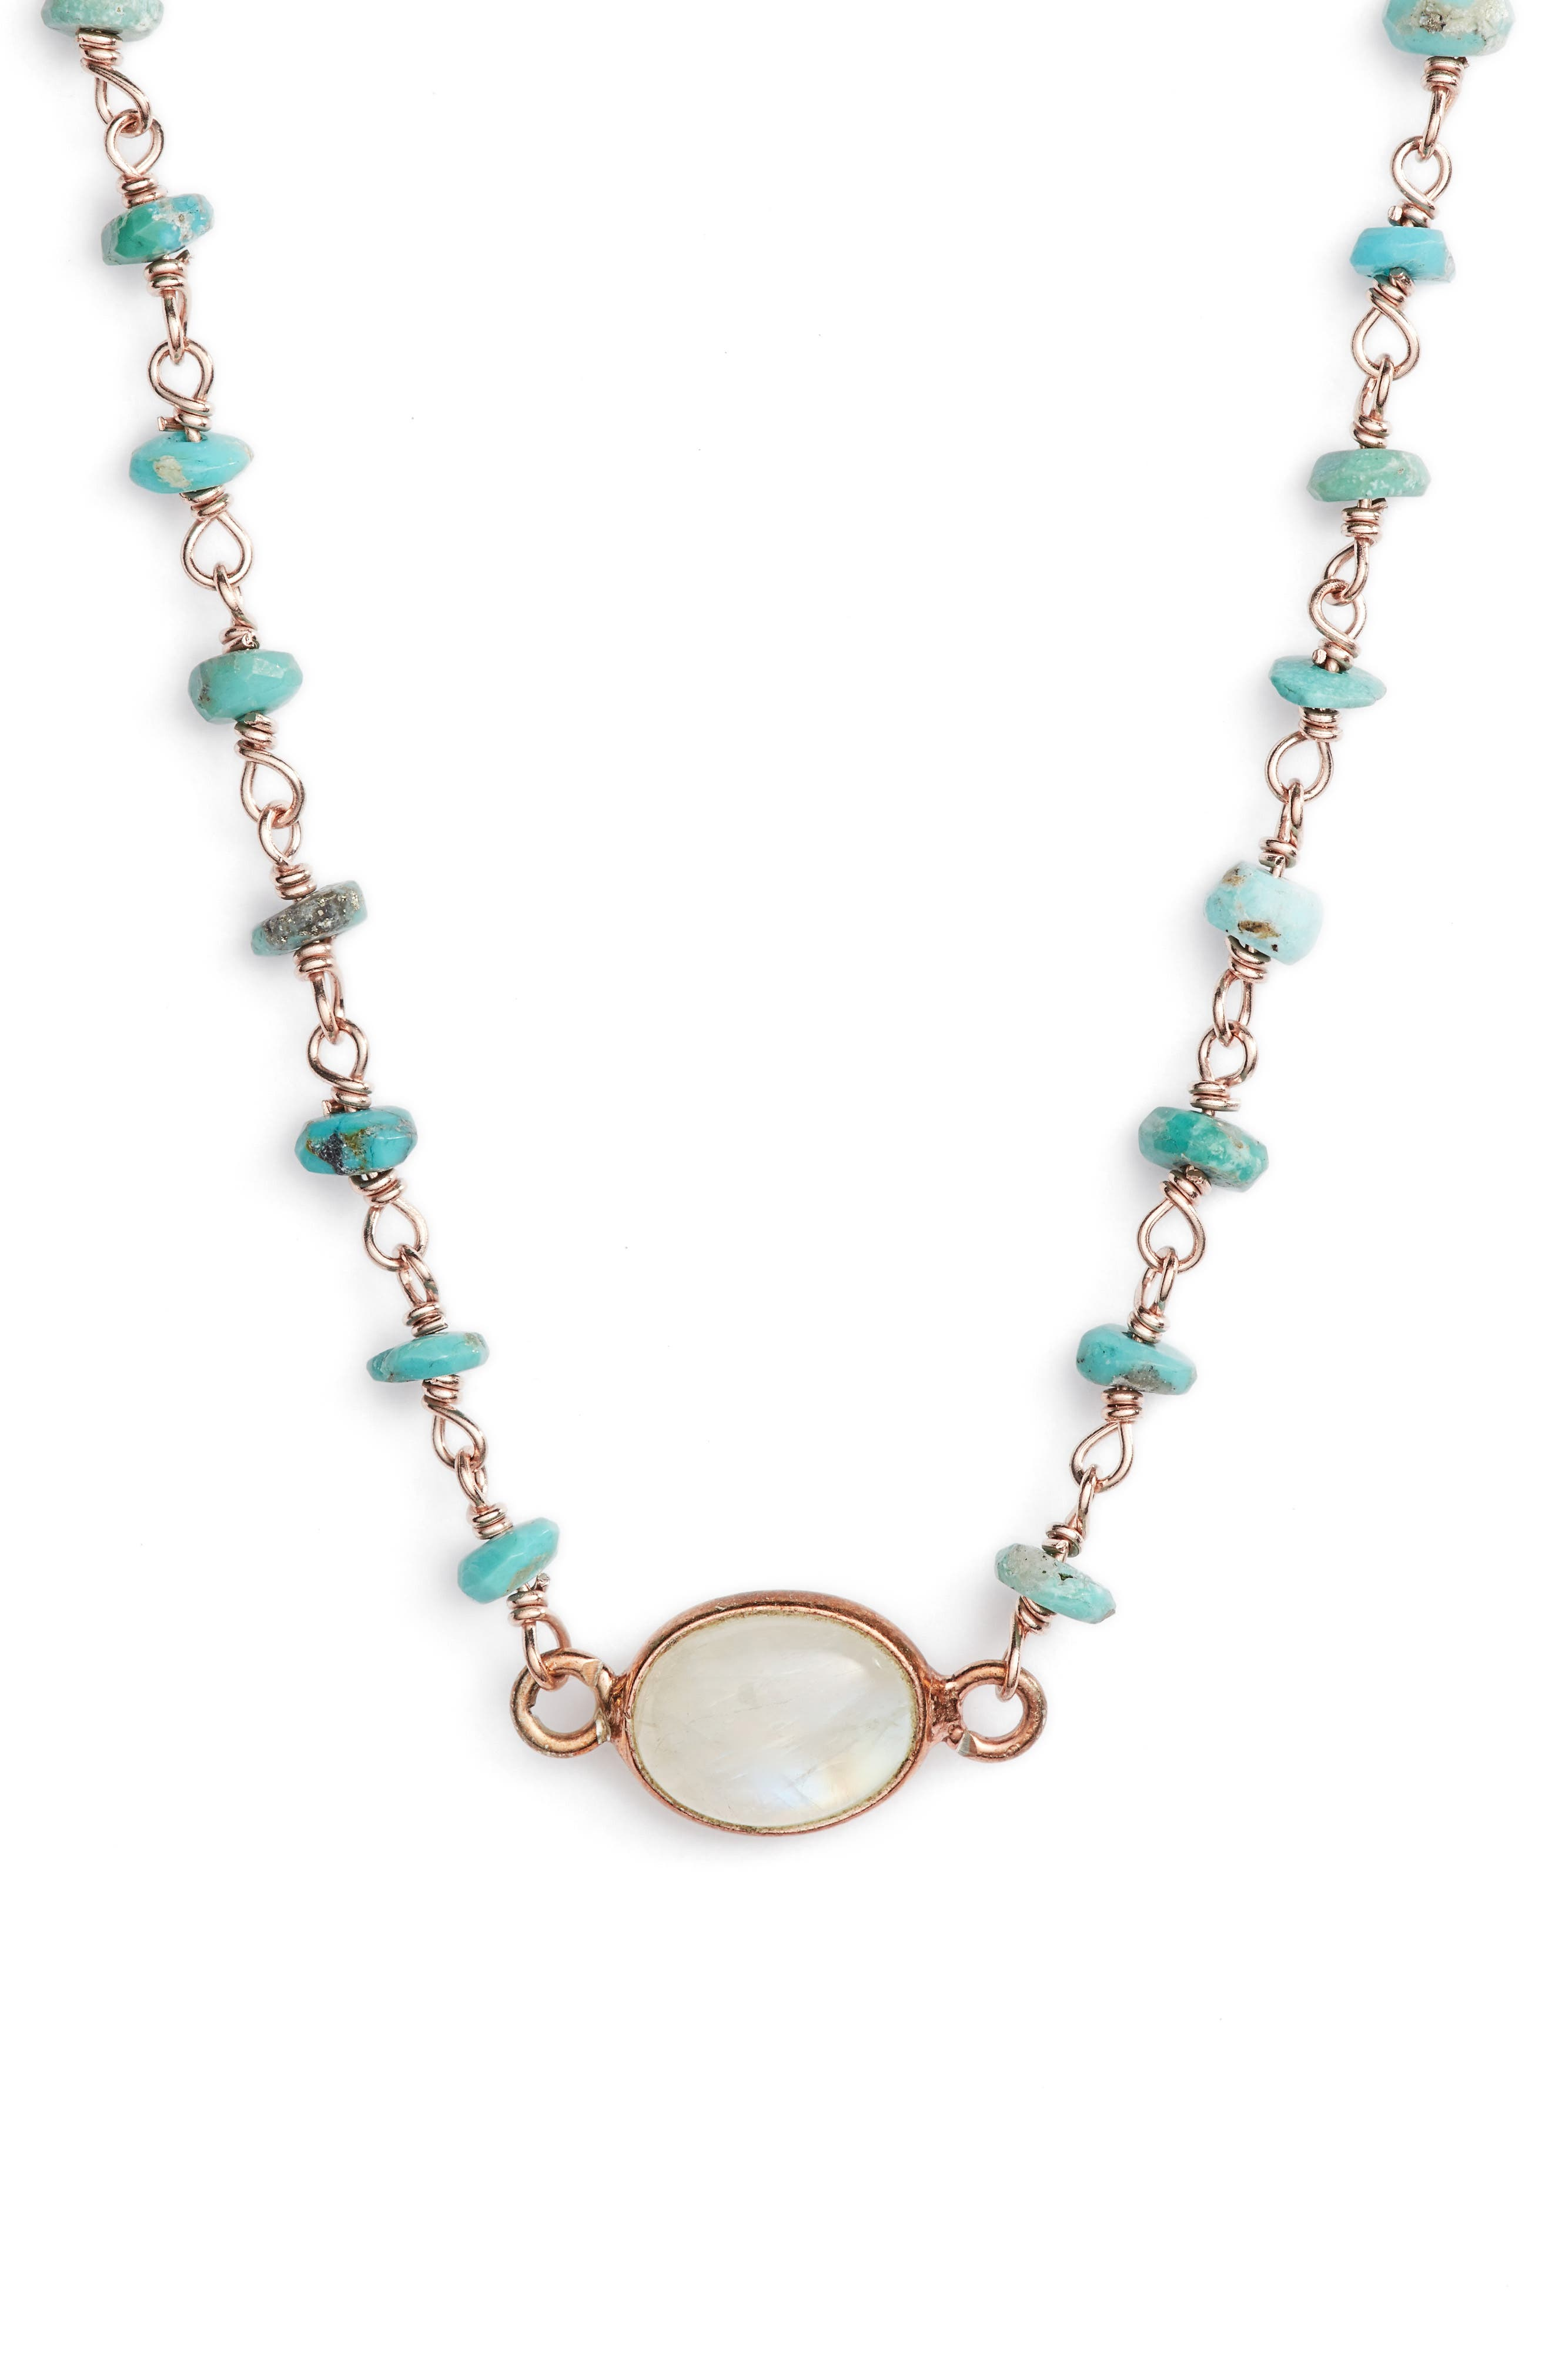 Semiprecious Stone Collar Necklace,                         Main,                         color, Turquoise/ Moonstone